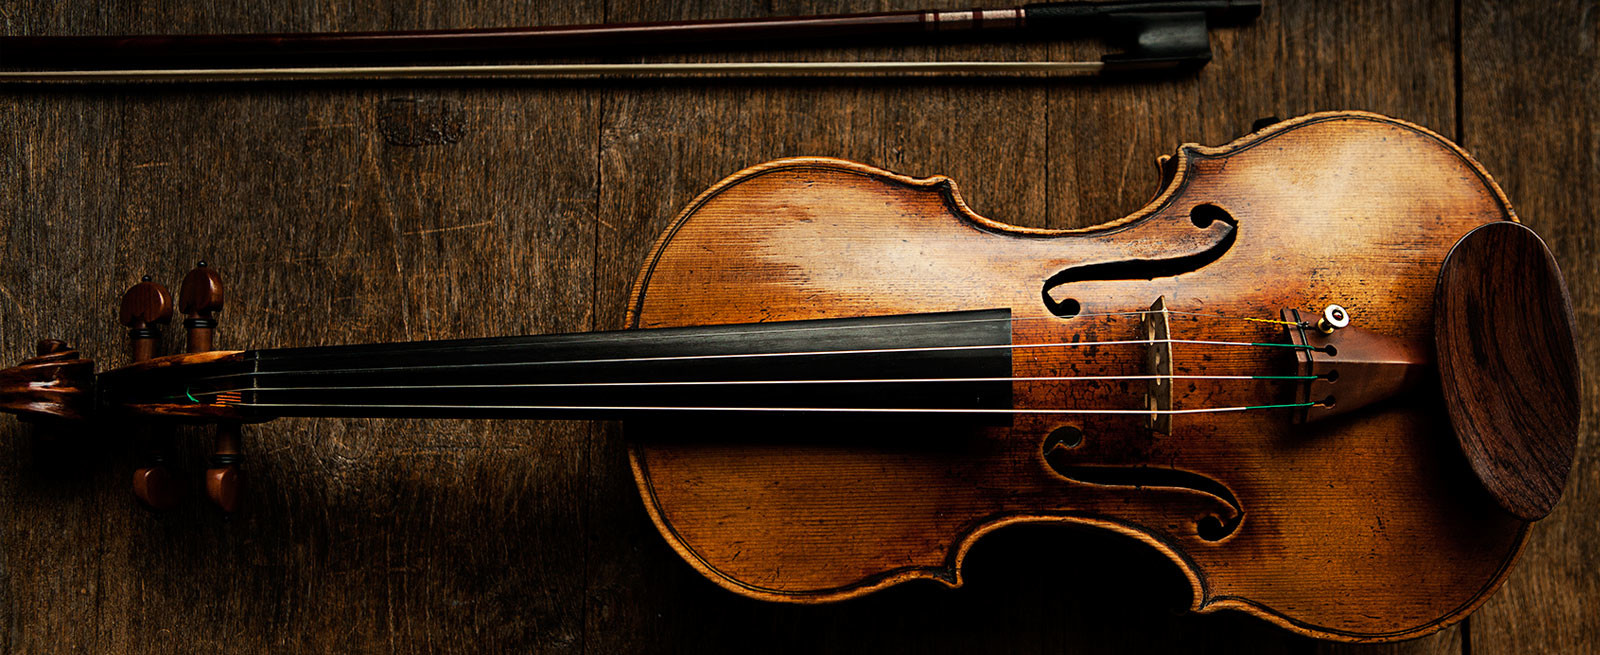 violin wallpaper